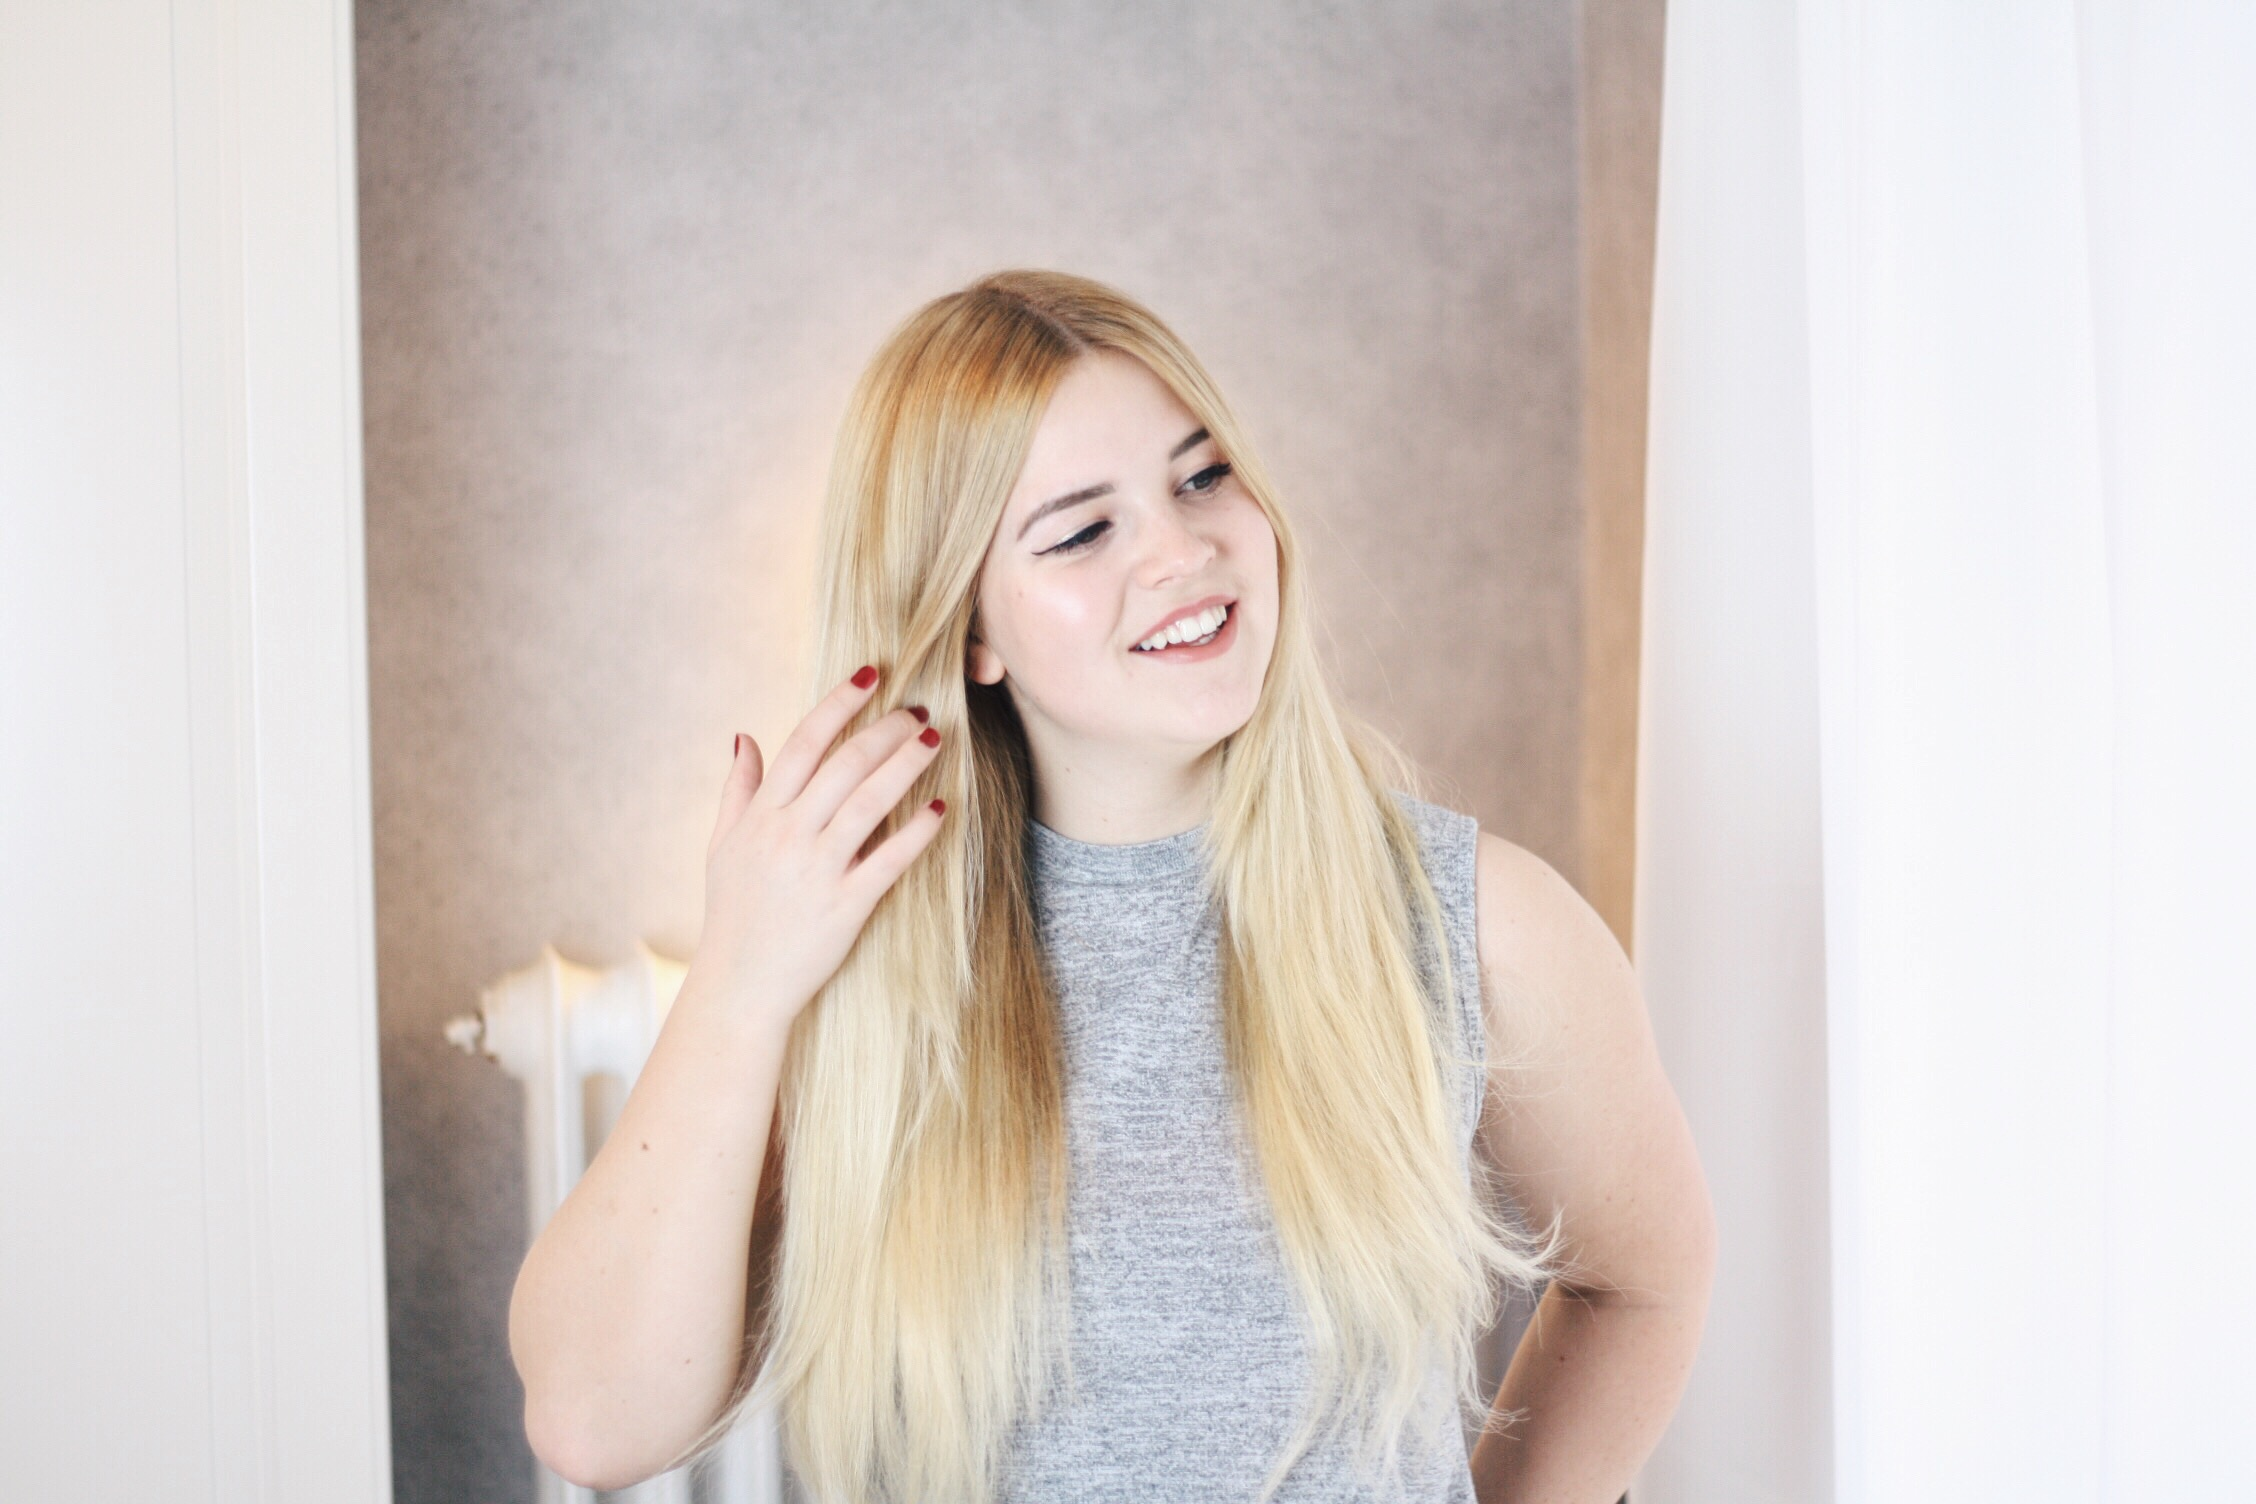 modeblogger_beautryblogger_hannover_hamburg_itsgoldie_extensions_clip-in_lange_haare_blond